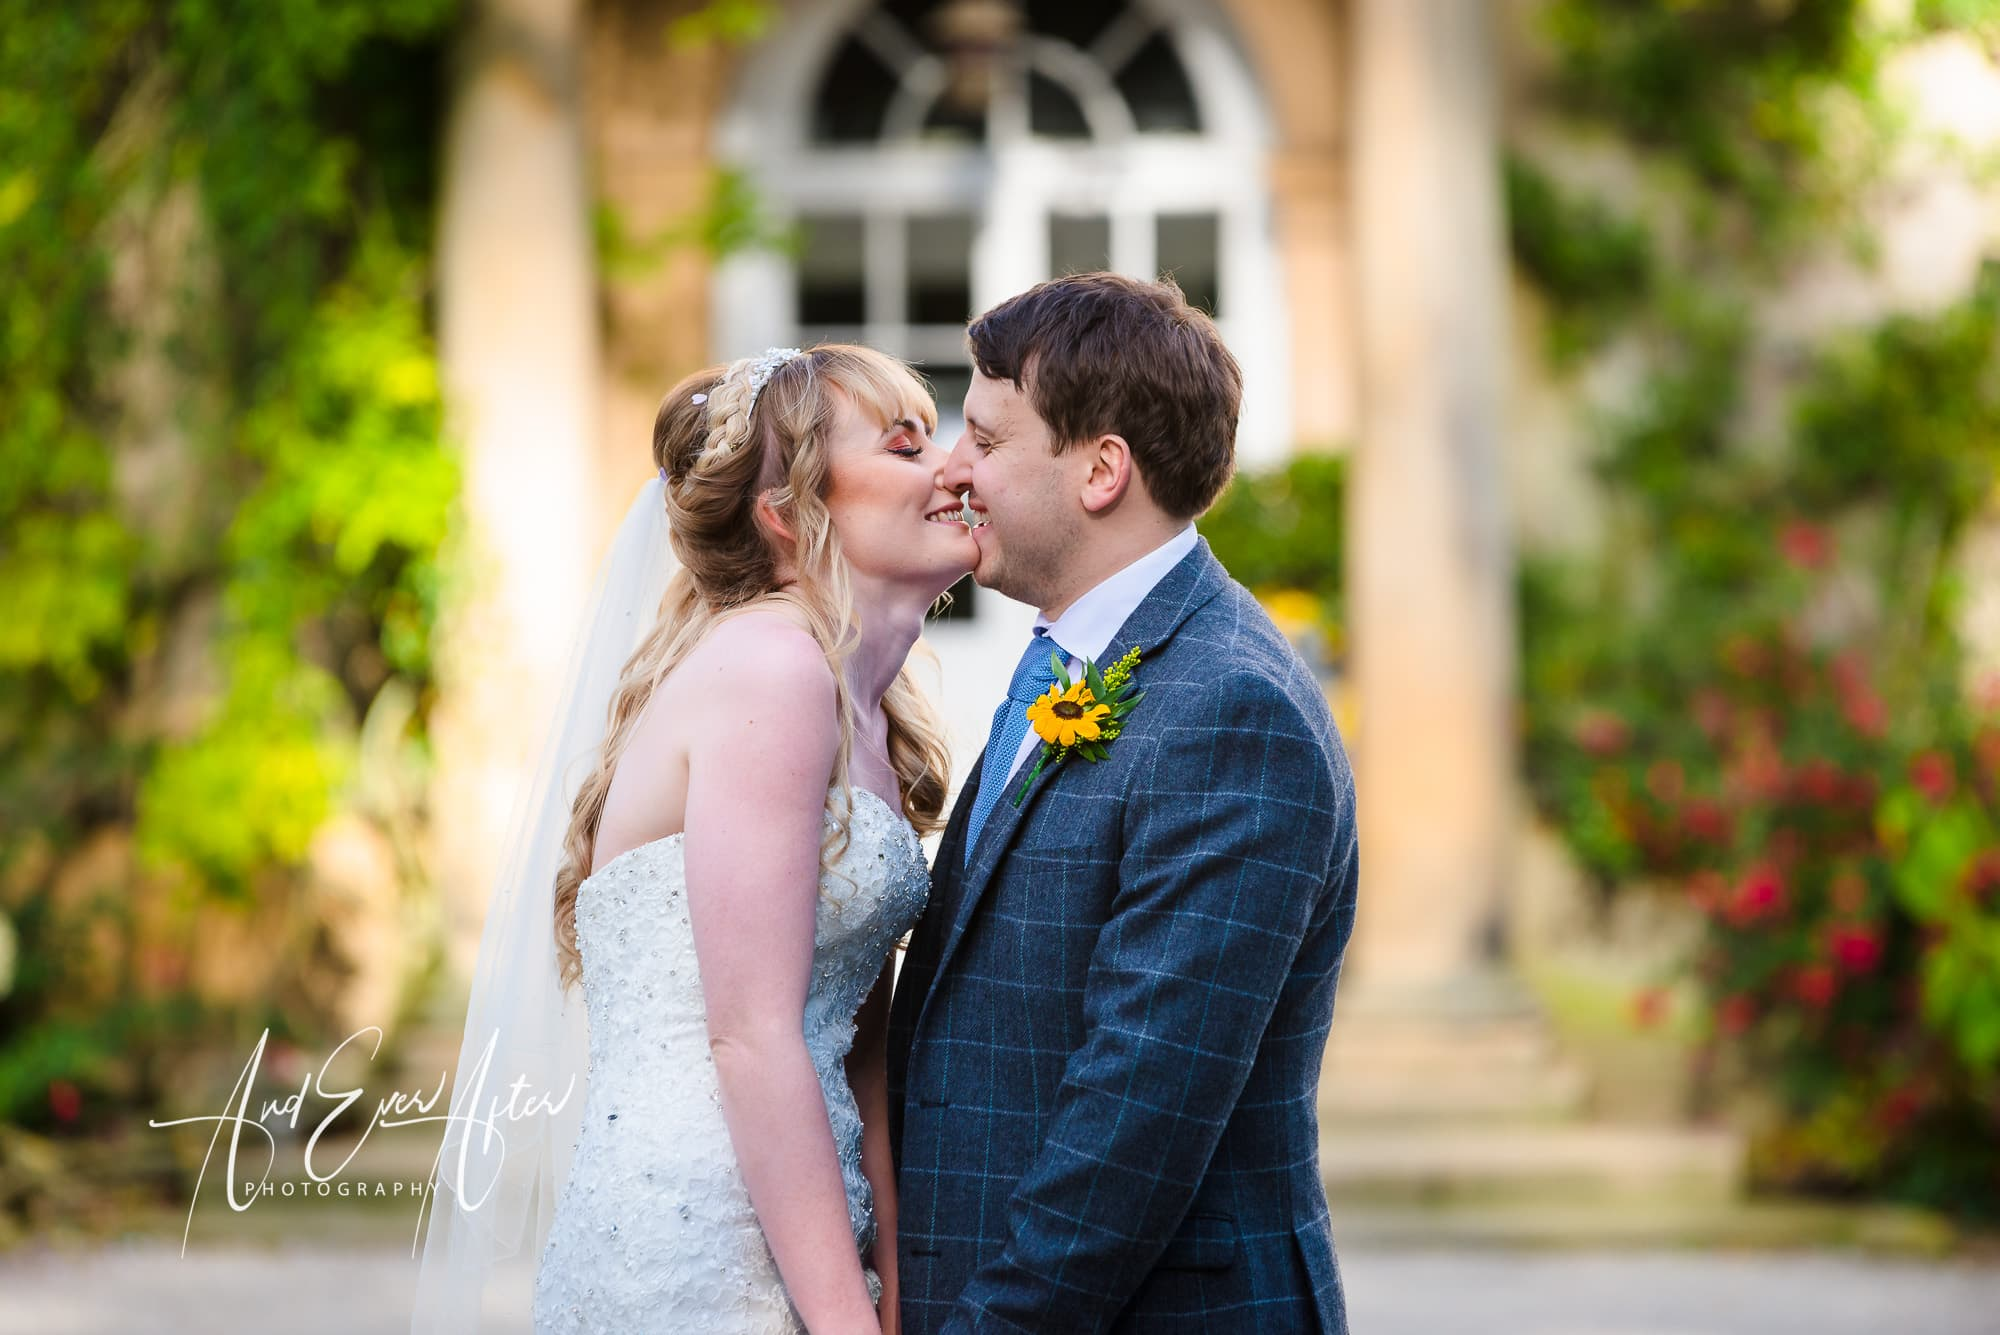 And Ever After Photography Wedding Photography Wedding Ceremony Wedding Celebration Bride and Groom